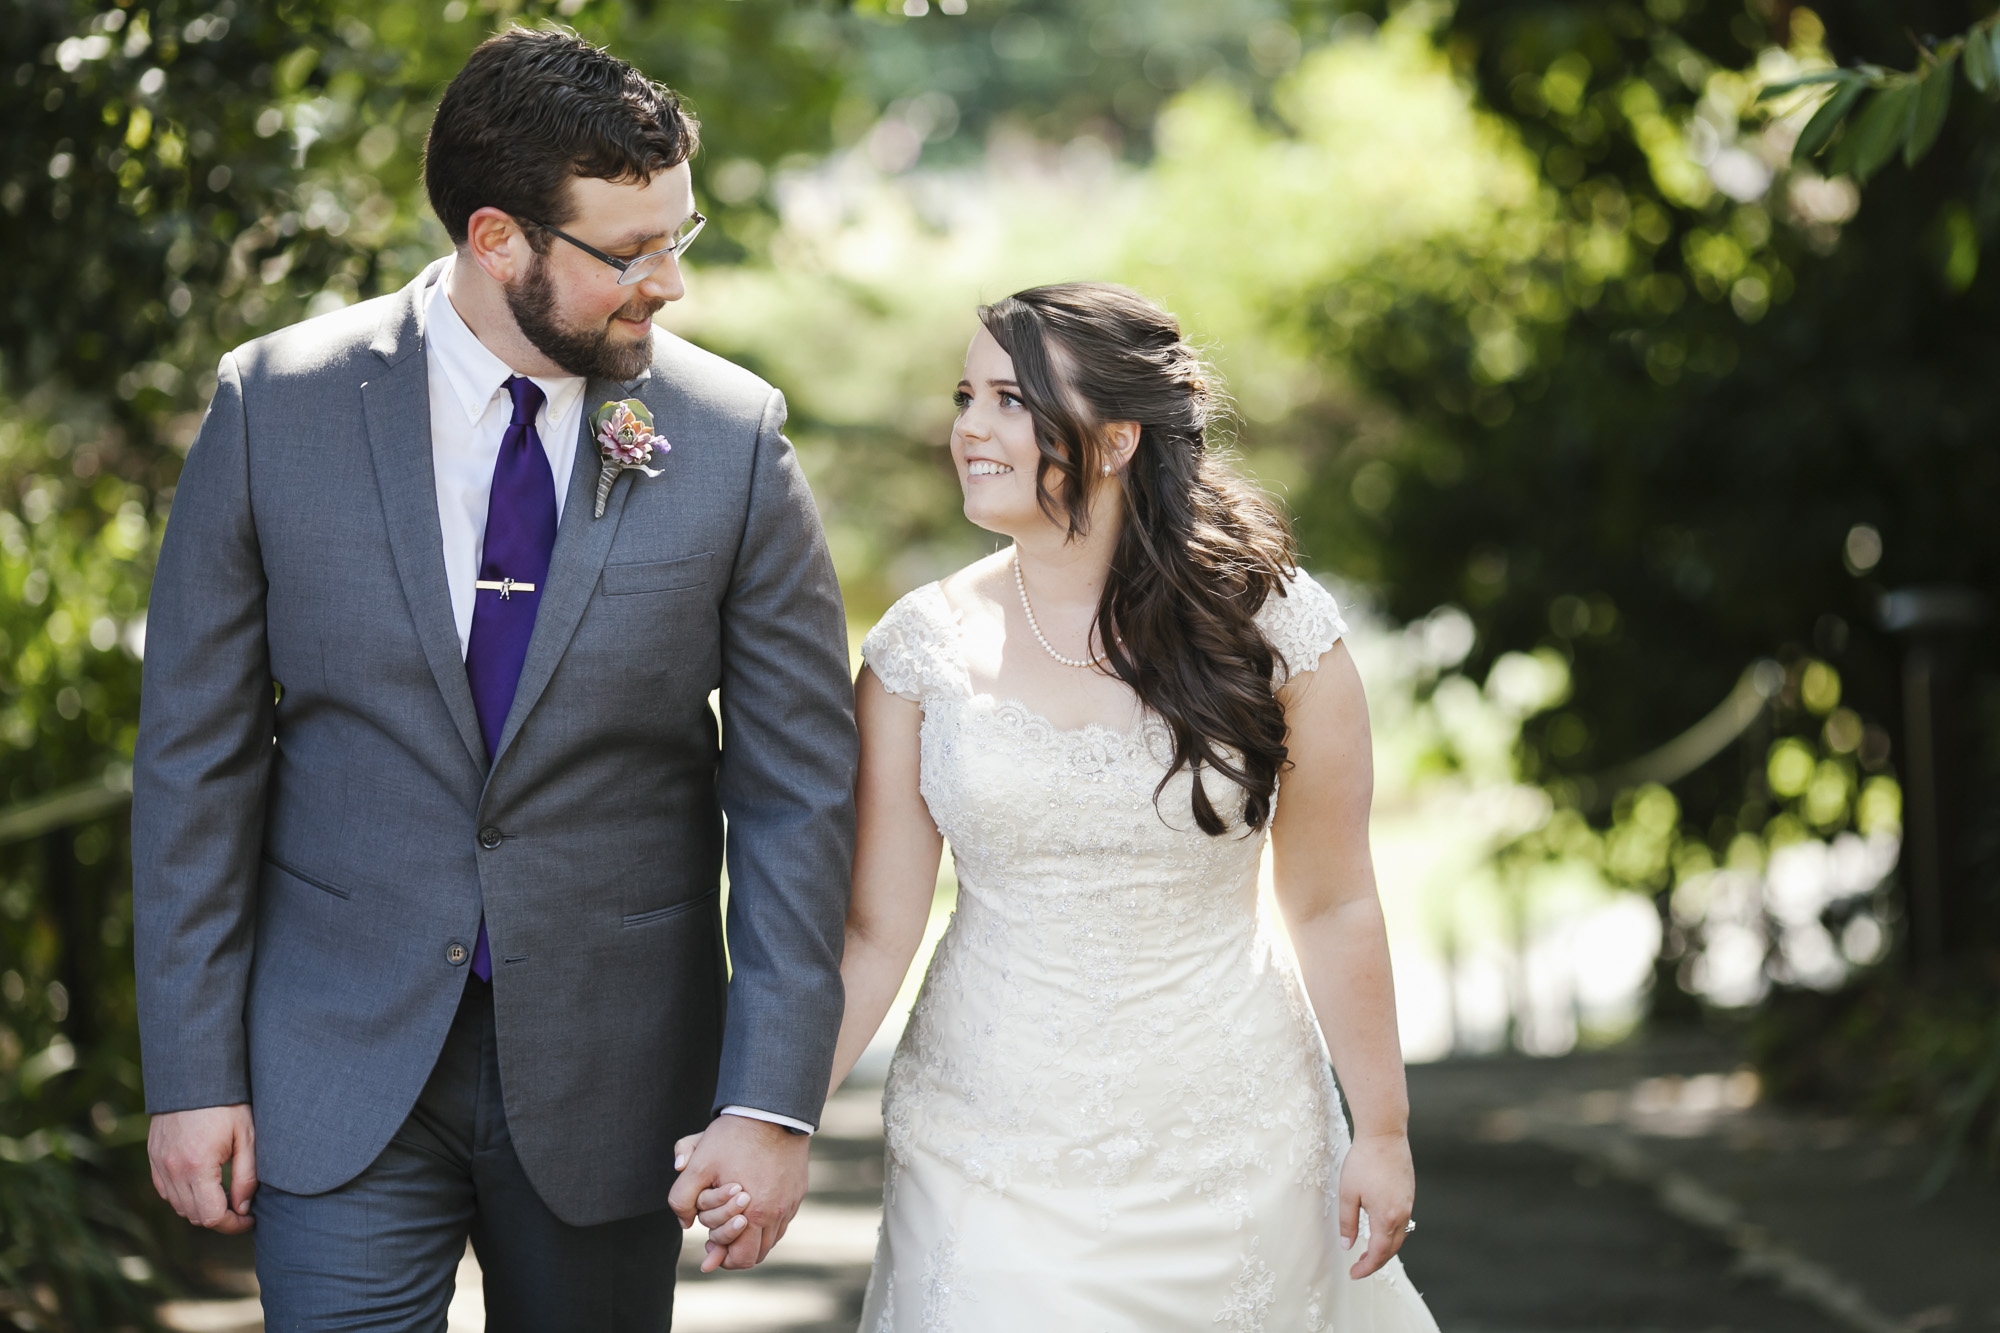 Wedding couple walks together while looking at each other in a garden